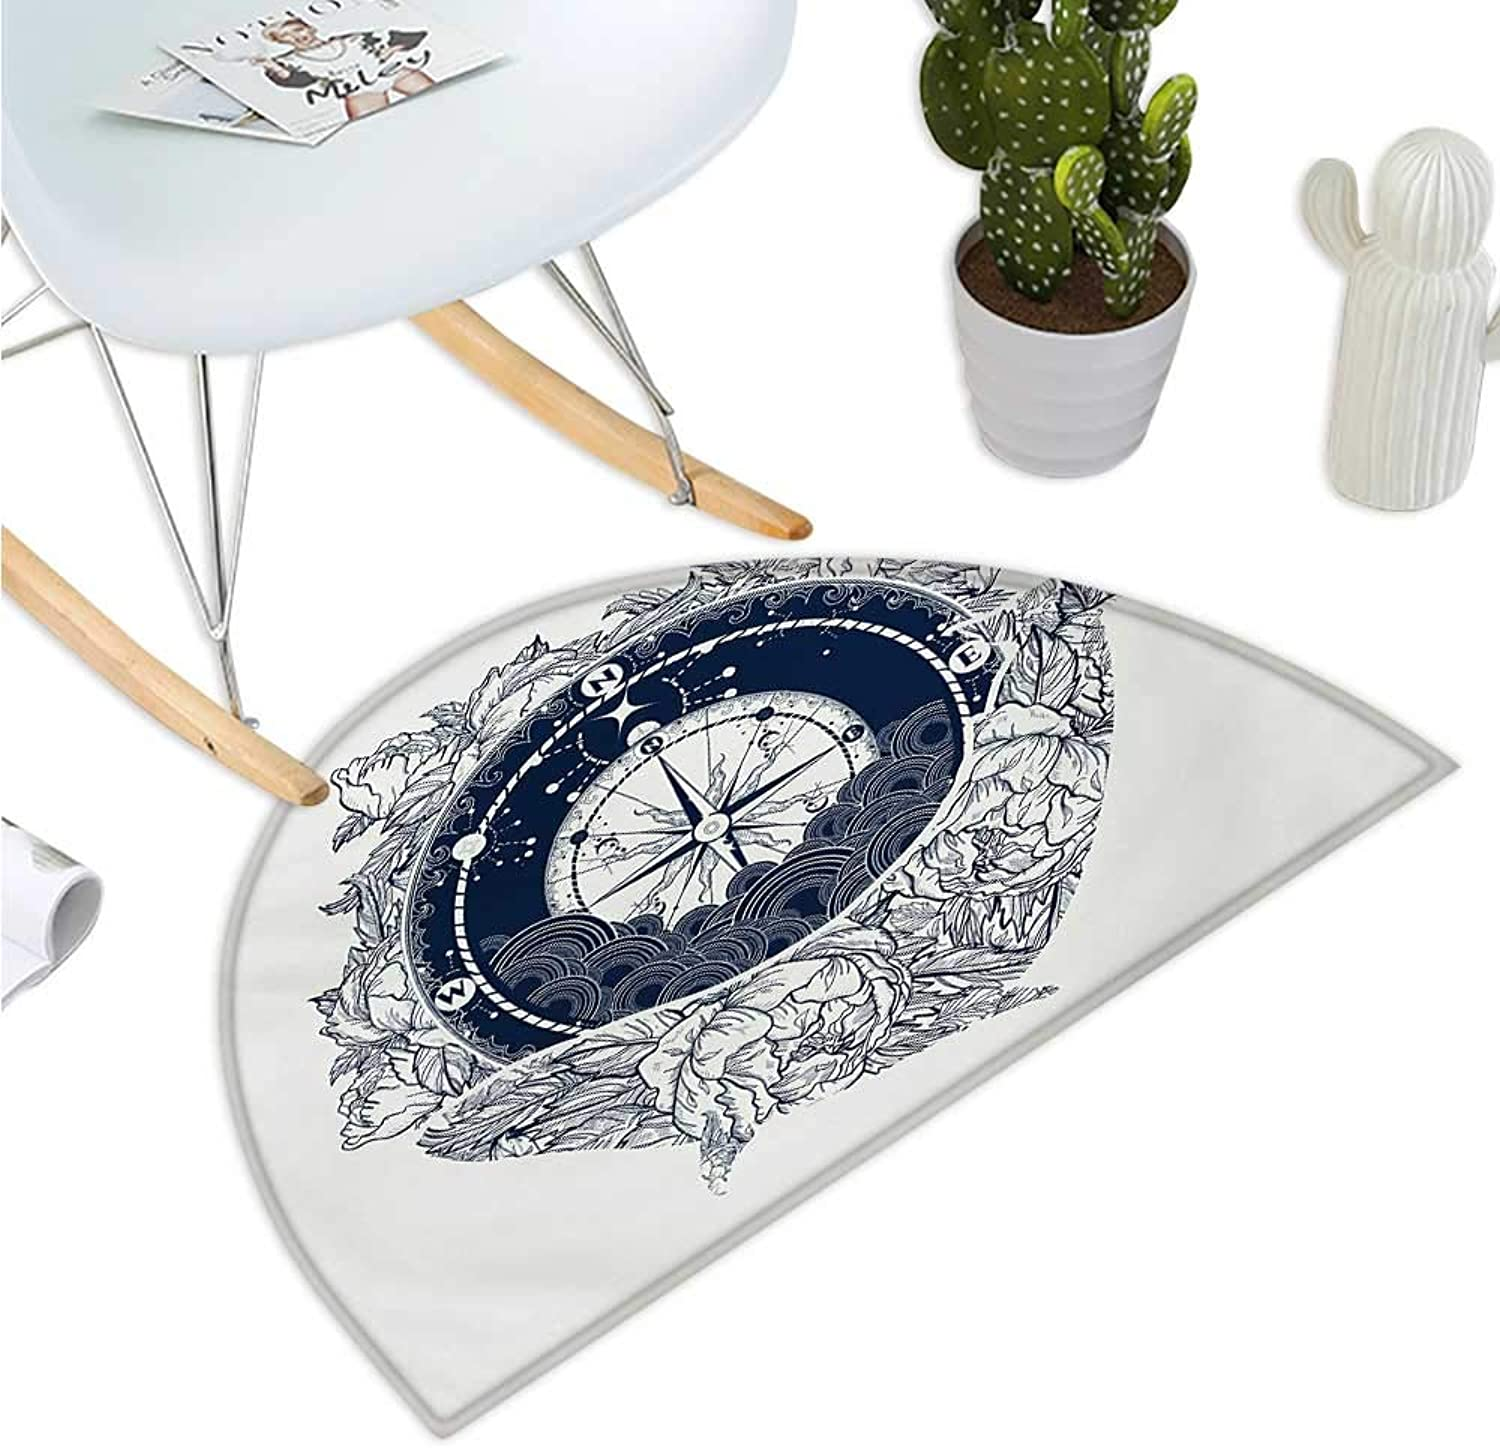 Adventure Semicircular Cushion Antique Marine Compass and Floral Whale Figure Mystical Victorian Vintage Entry Door Mat H 35.4  xD 53.1  Dark bluee White